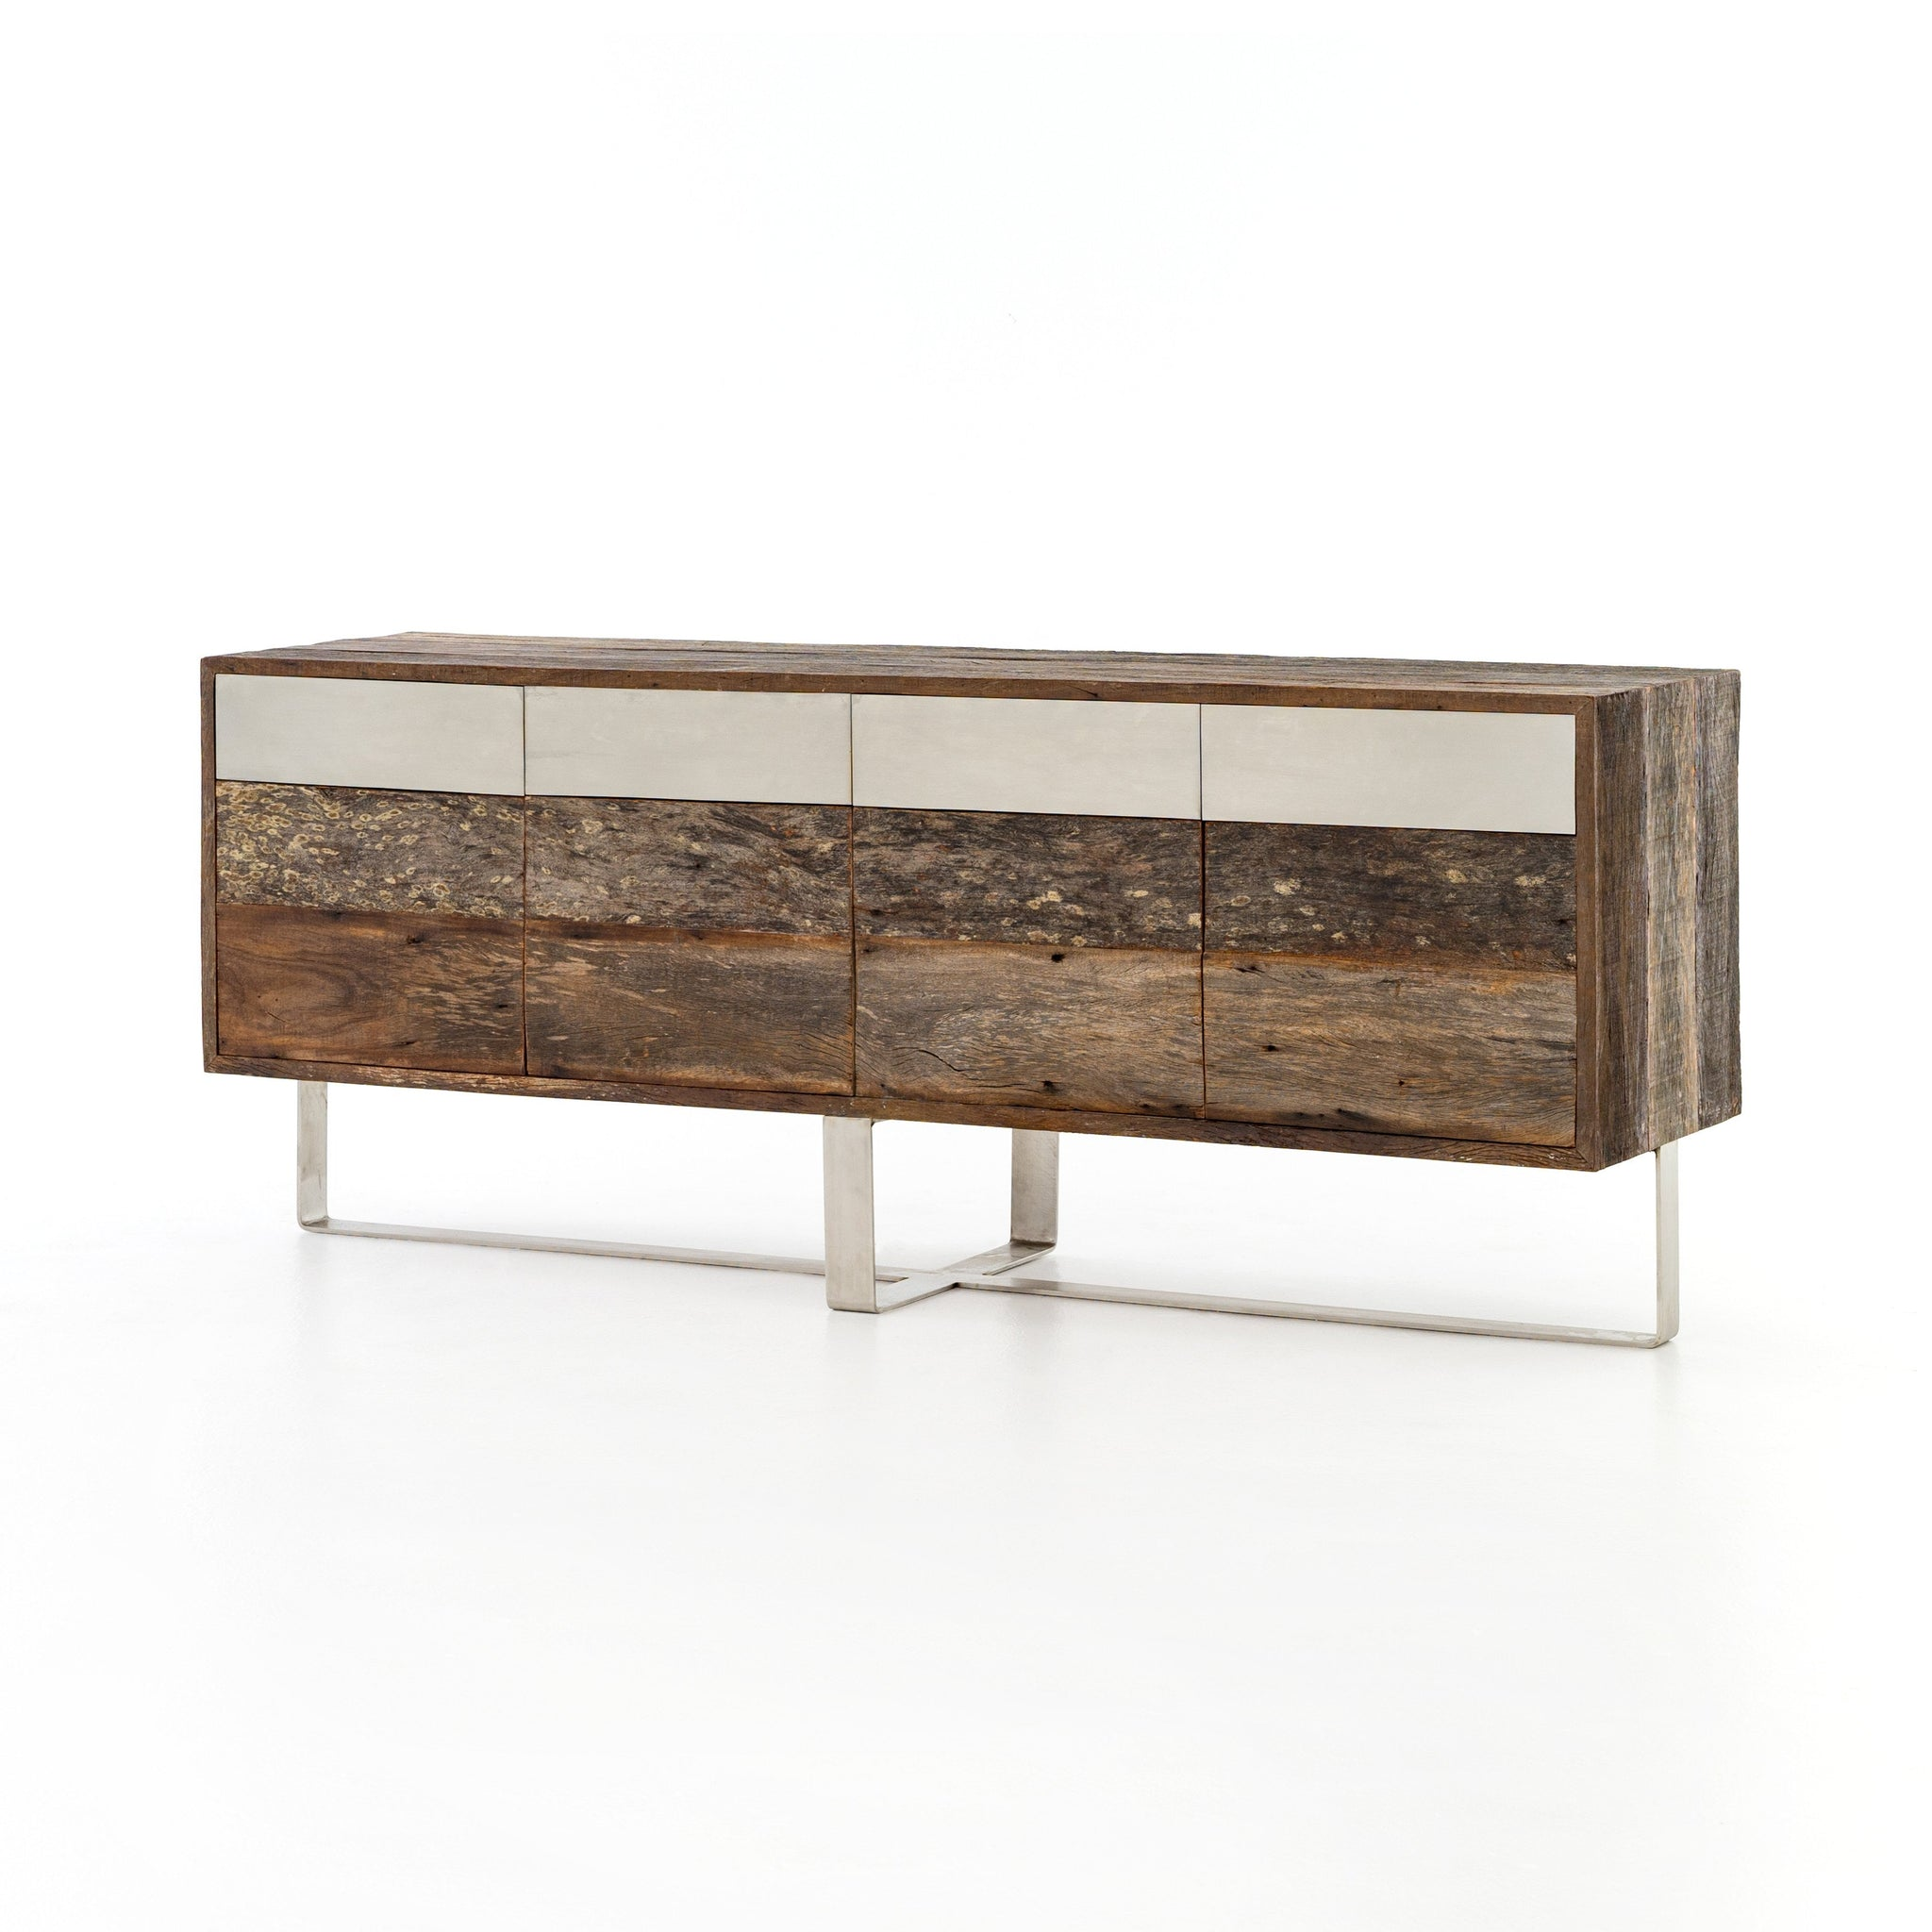 SEMMES SIDEBOARD, Stainless Steel, Beech Walnut, Peroba Natural